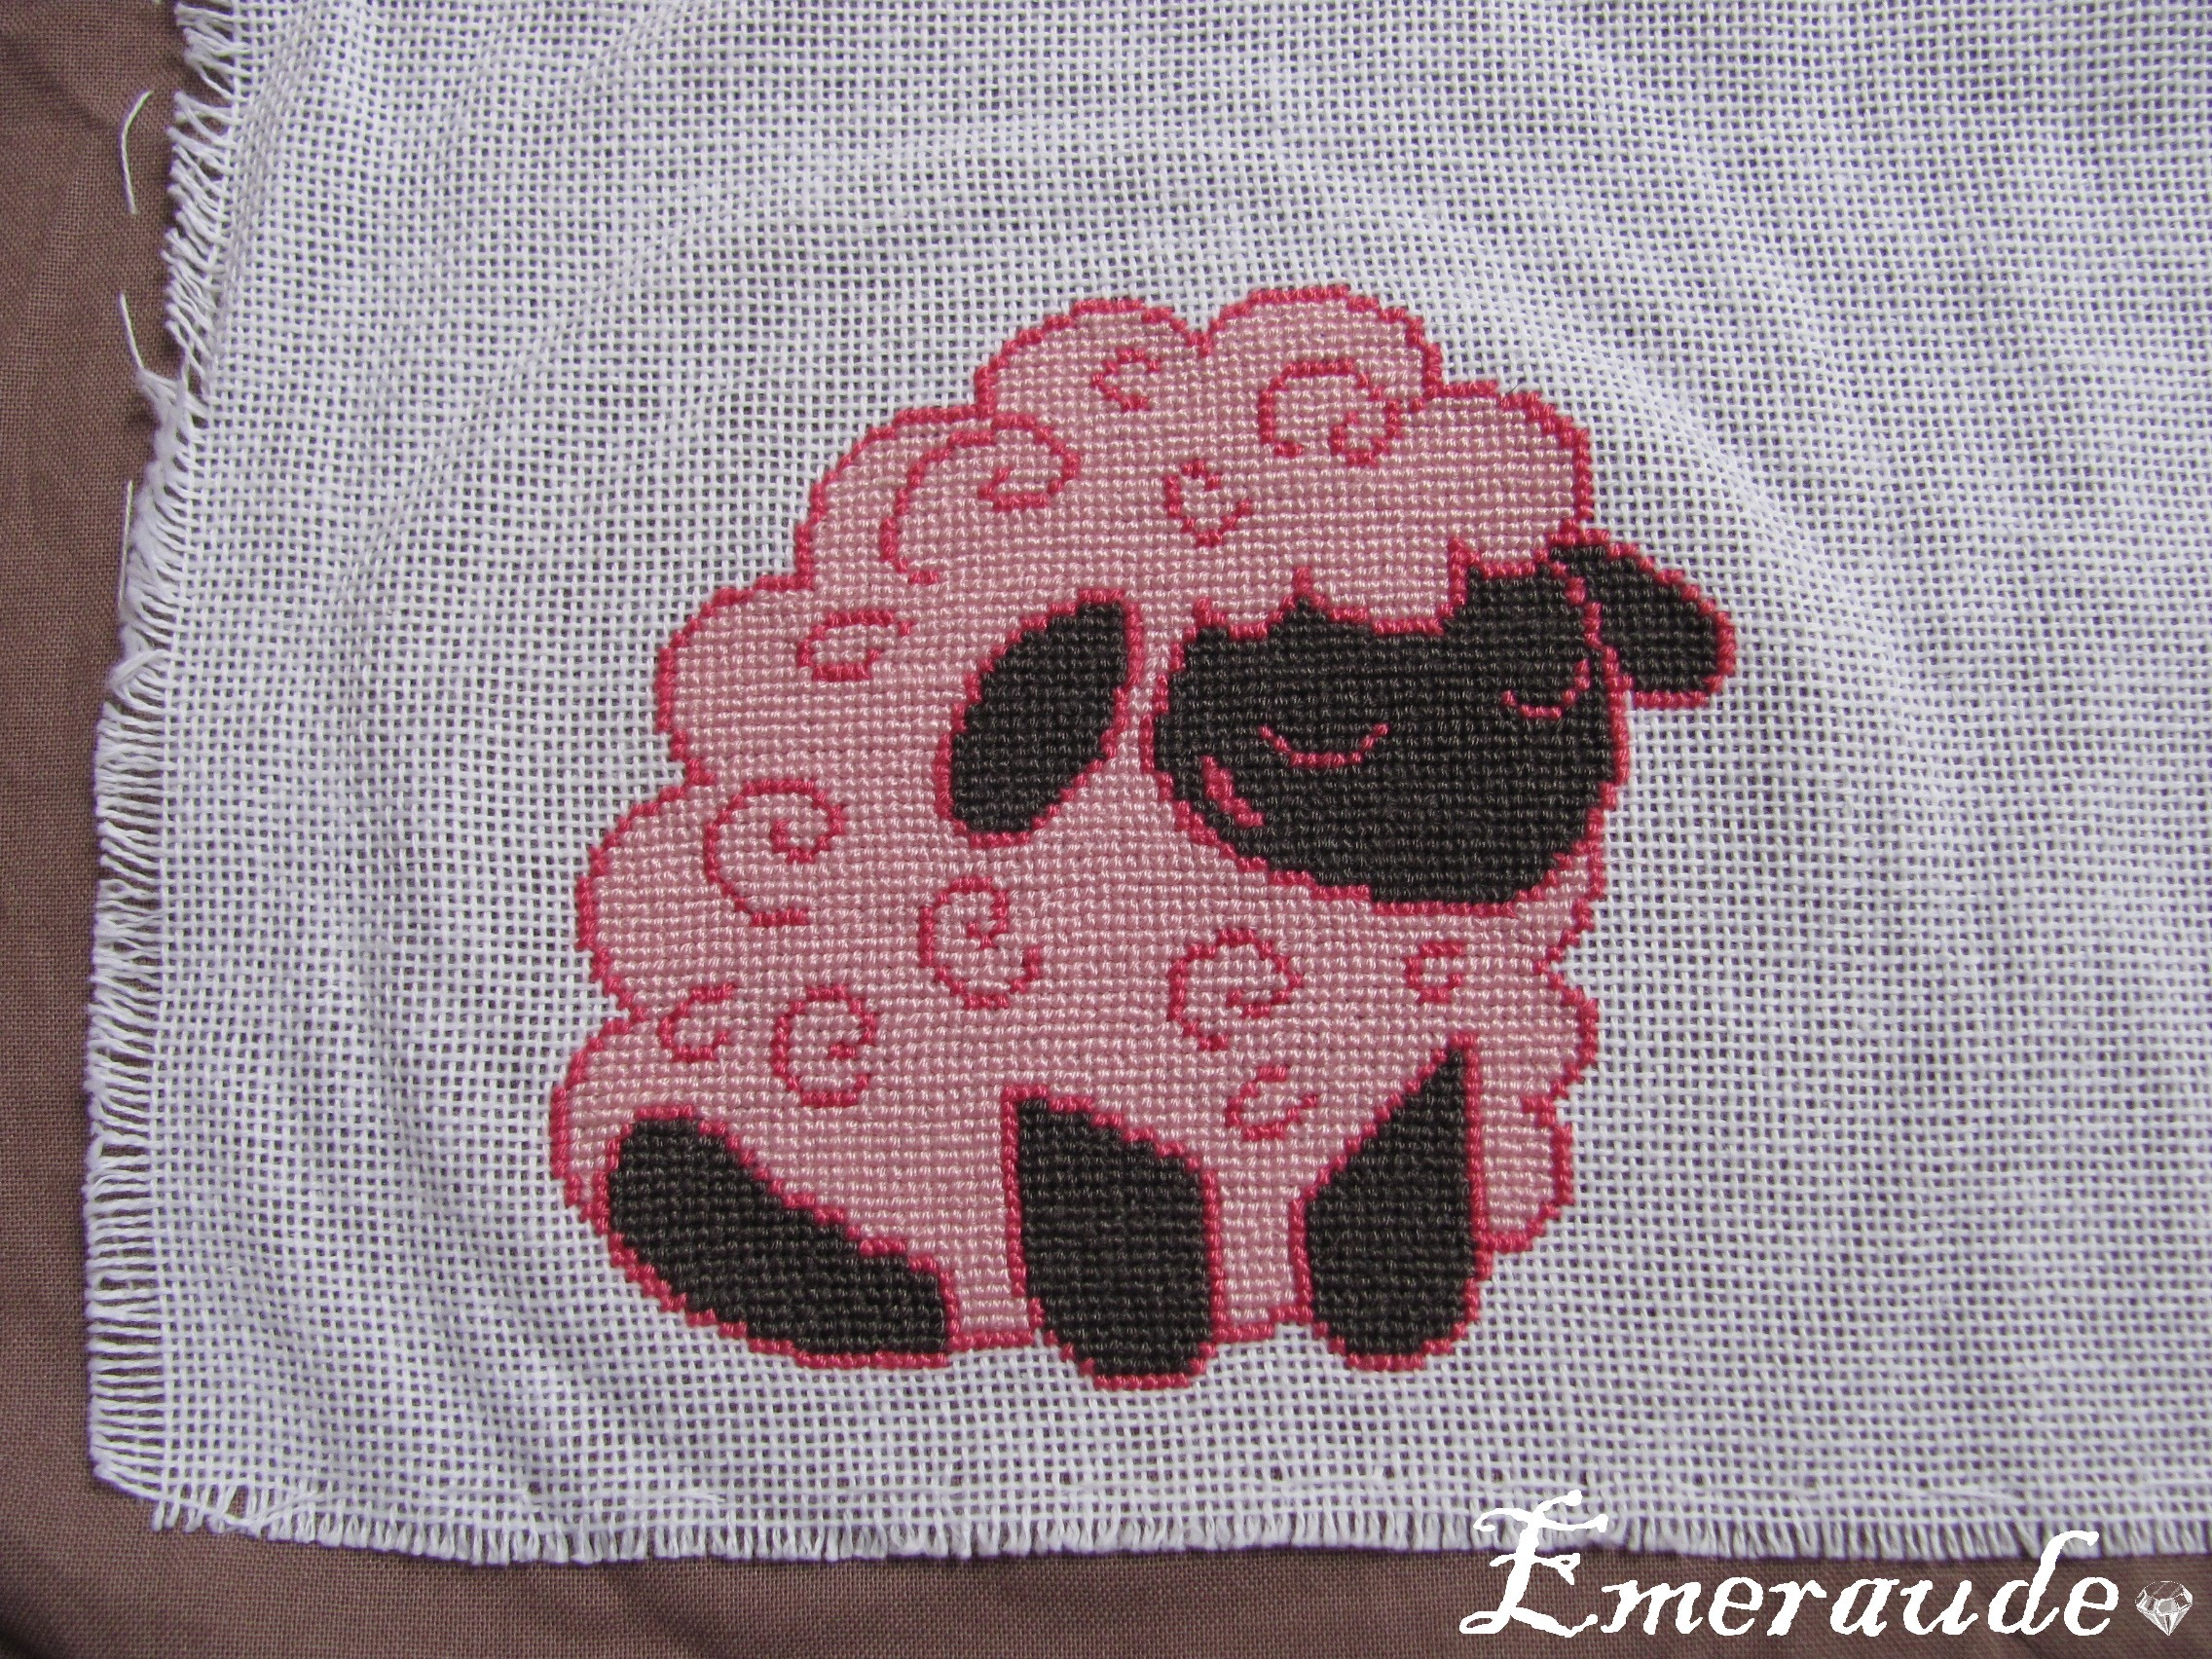 Broderie: mouton rose au point de croix